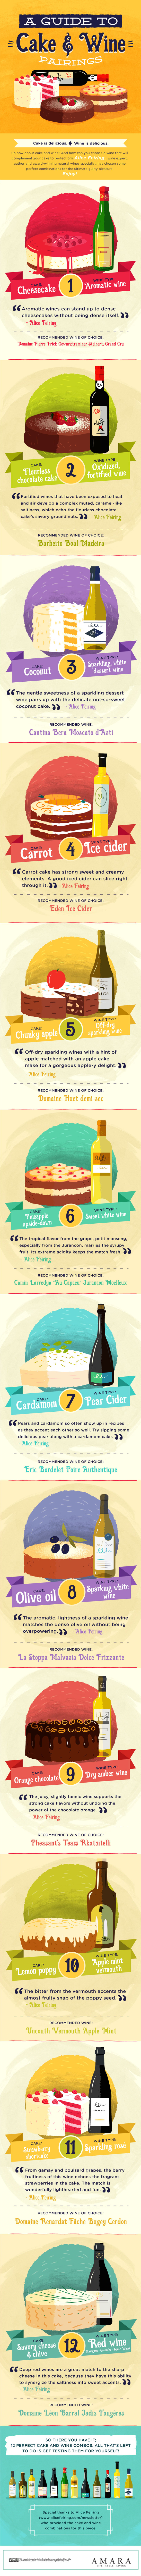 A-guide-to-cake-and-wine-pairings